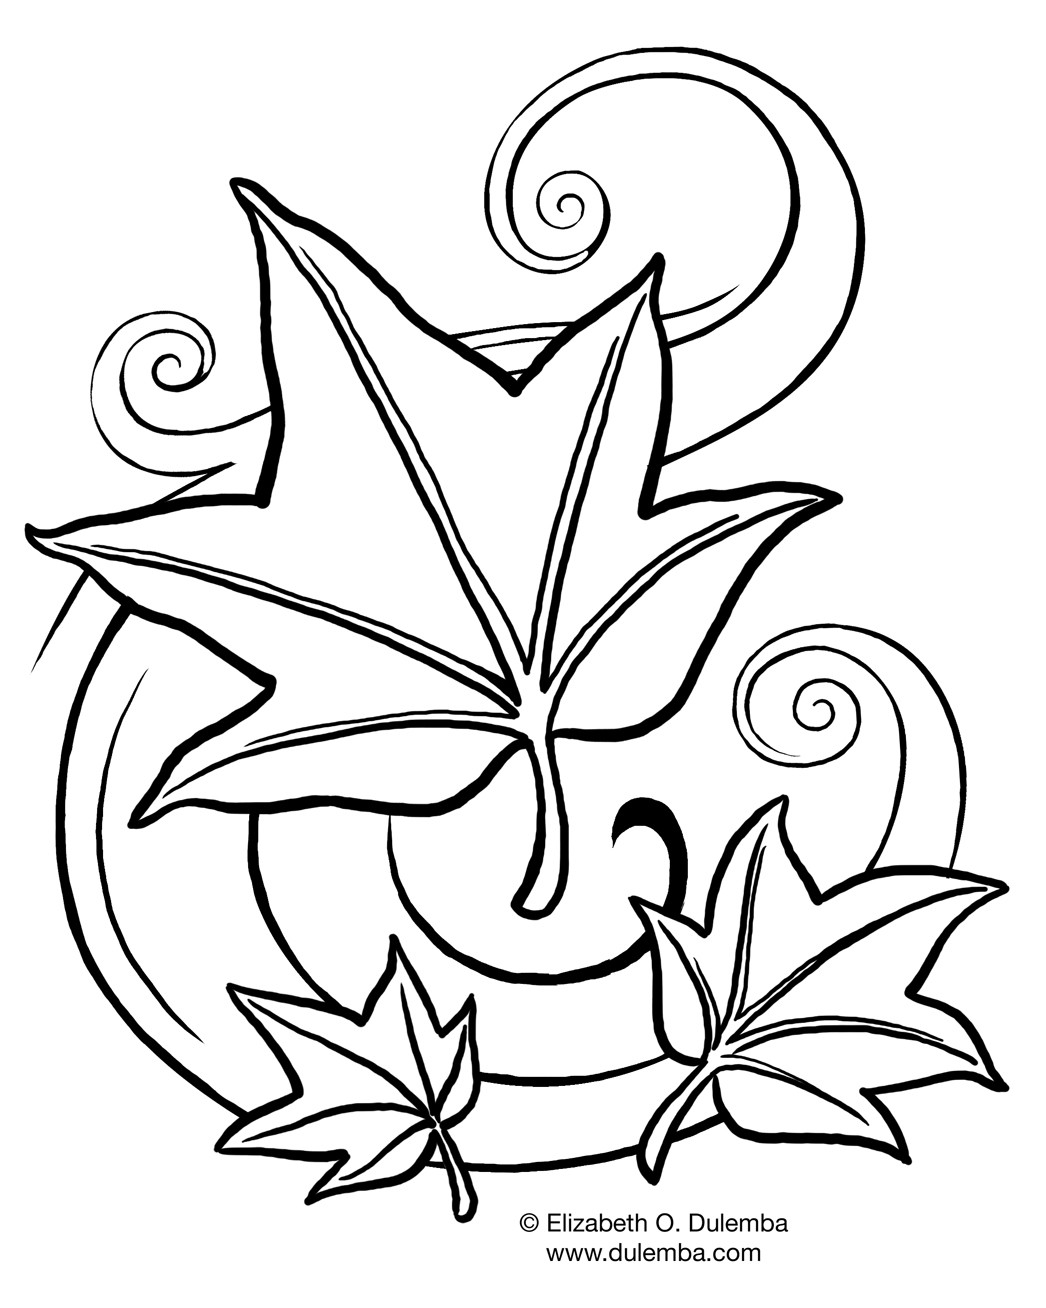 Kids Fall Coloring Pages  Free Fall Coloring Pages for Kids Disney Coloring Pages